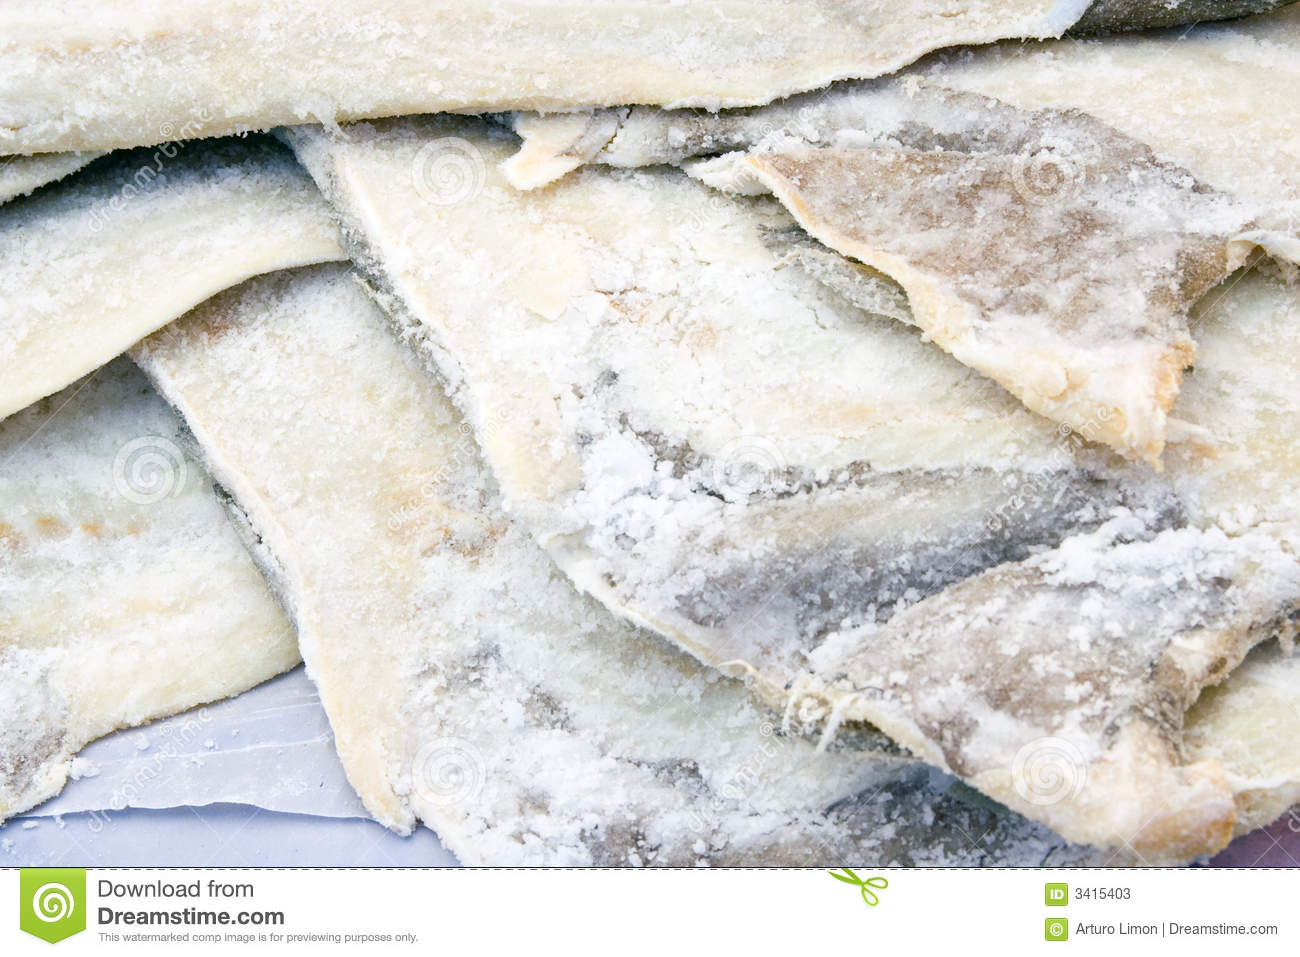 Cod fish stock image image of seafood nutrition for Cod fish nutrition